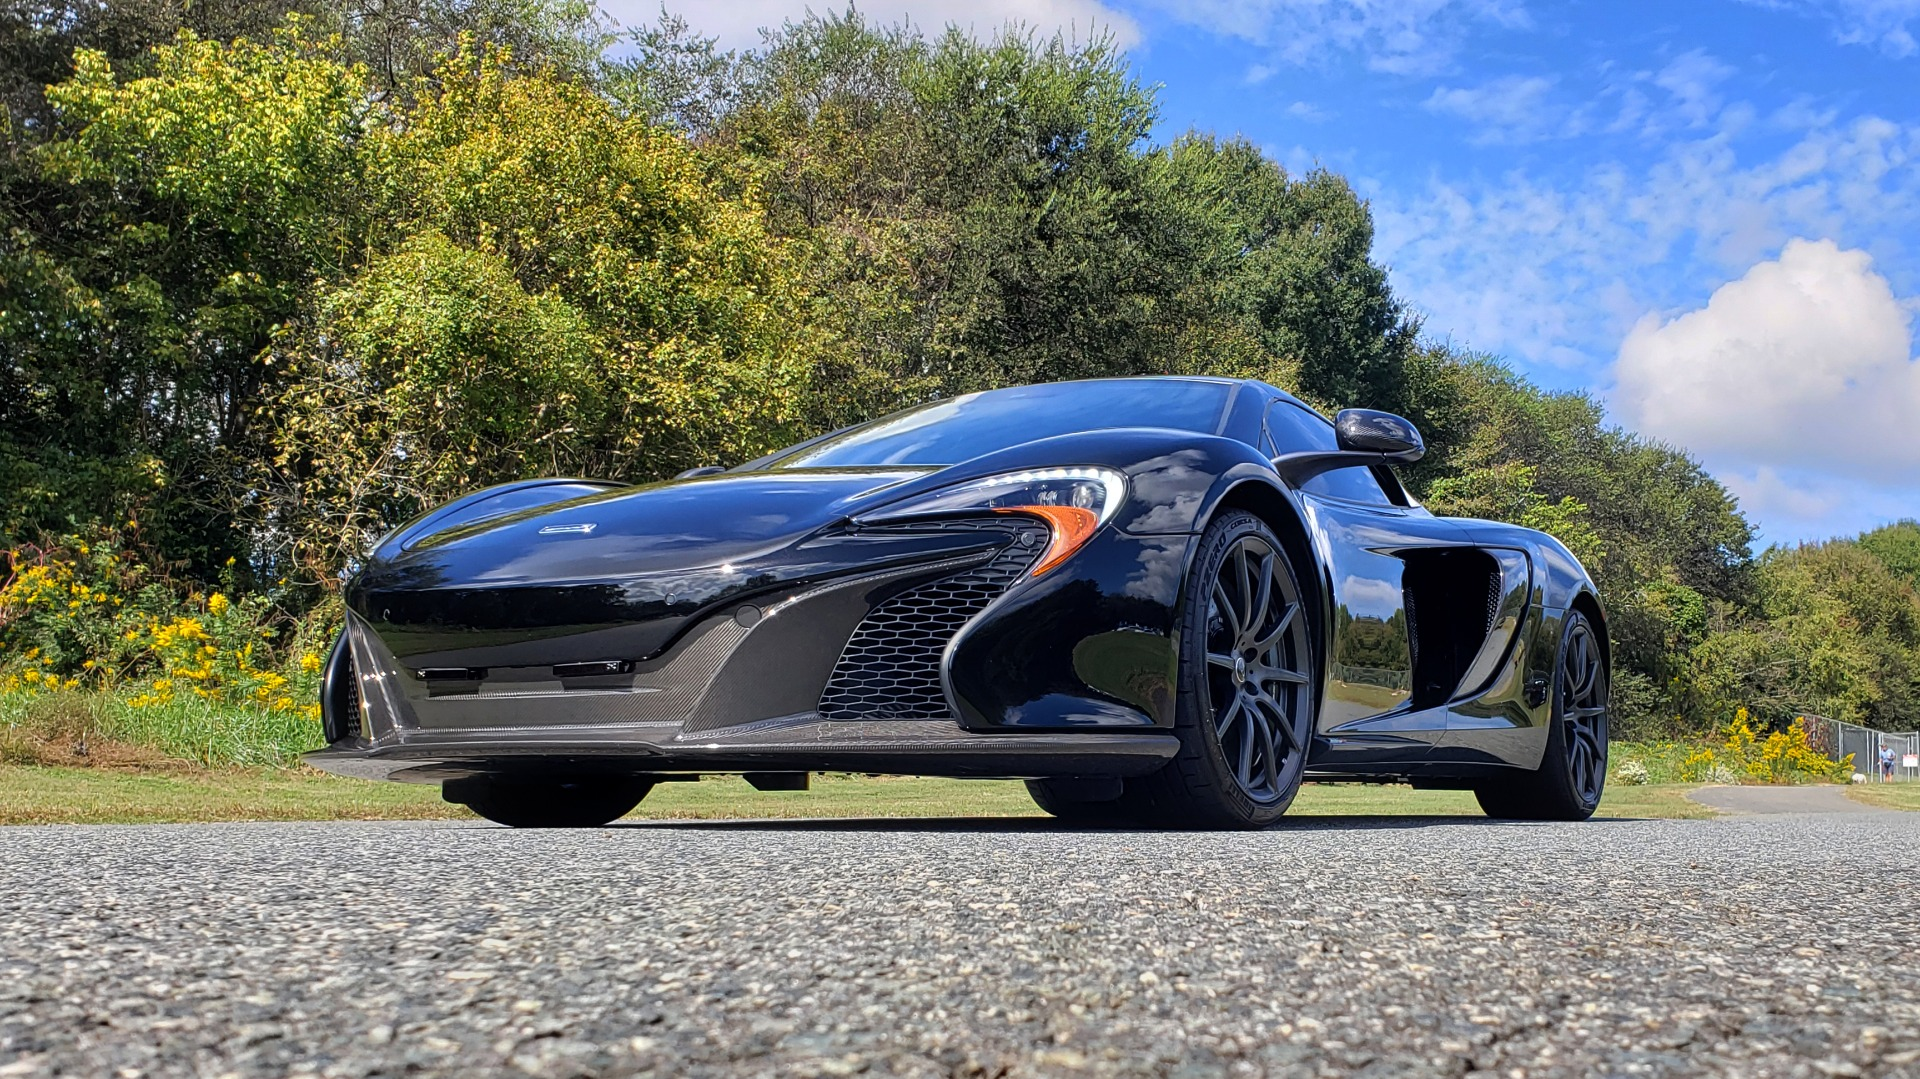 Used 2016 McLaren 650S SPIDER / 641HP / PARK SENSORS / LOW MILES / 1-OWNER for sale Sold at Formula Imports in Charlotte NC 28227 2